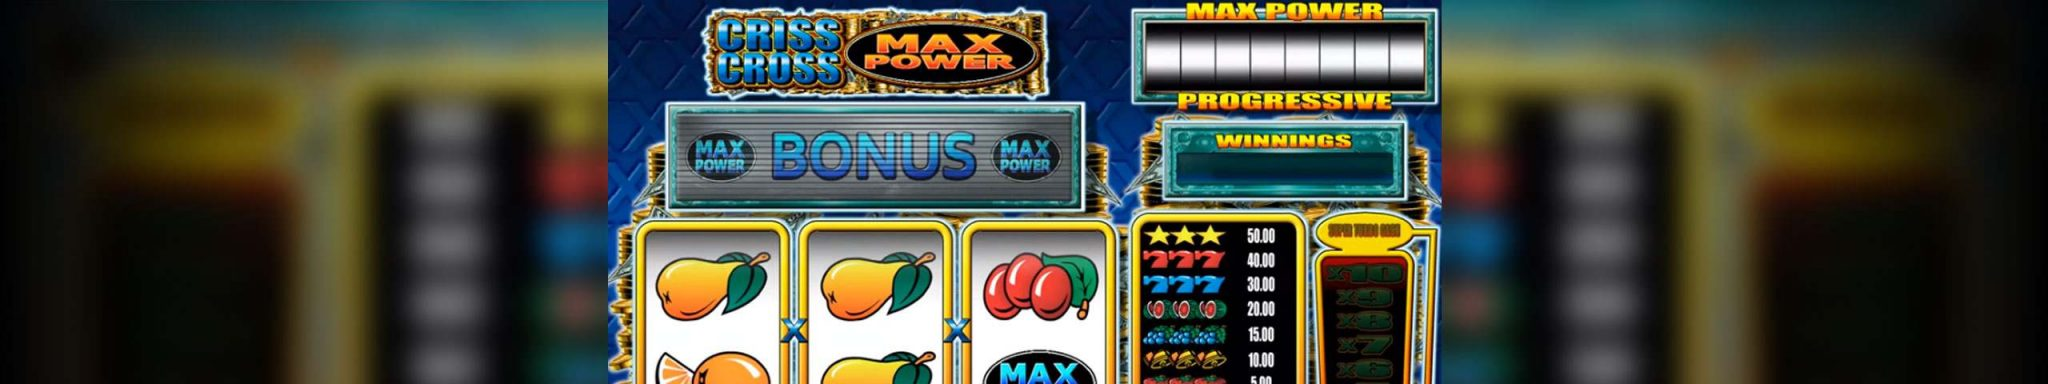 Criss Cross Max Power Microgaming spilleautomater slider